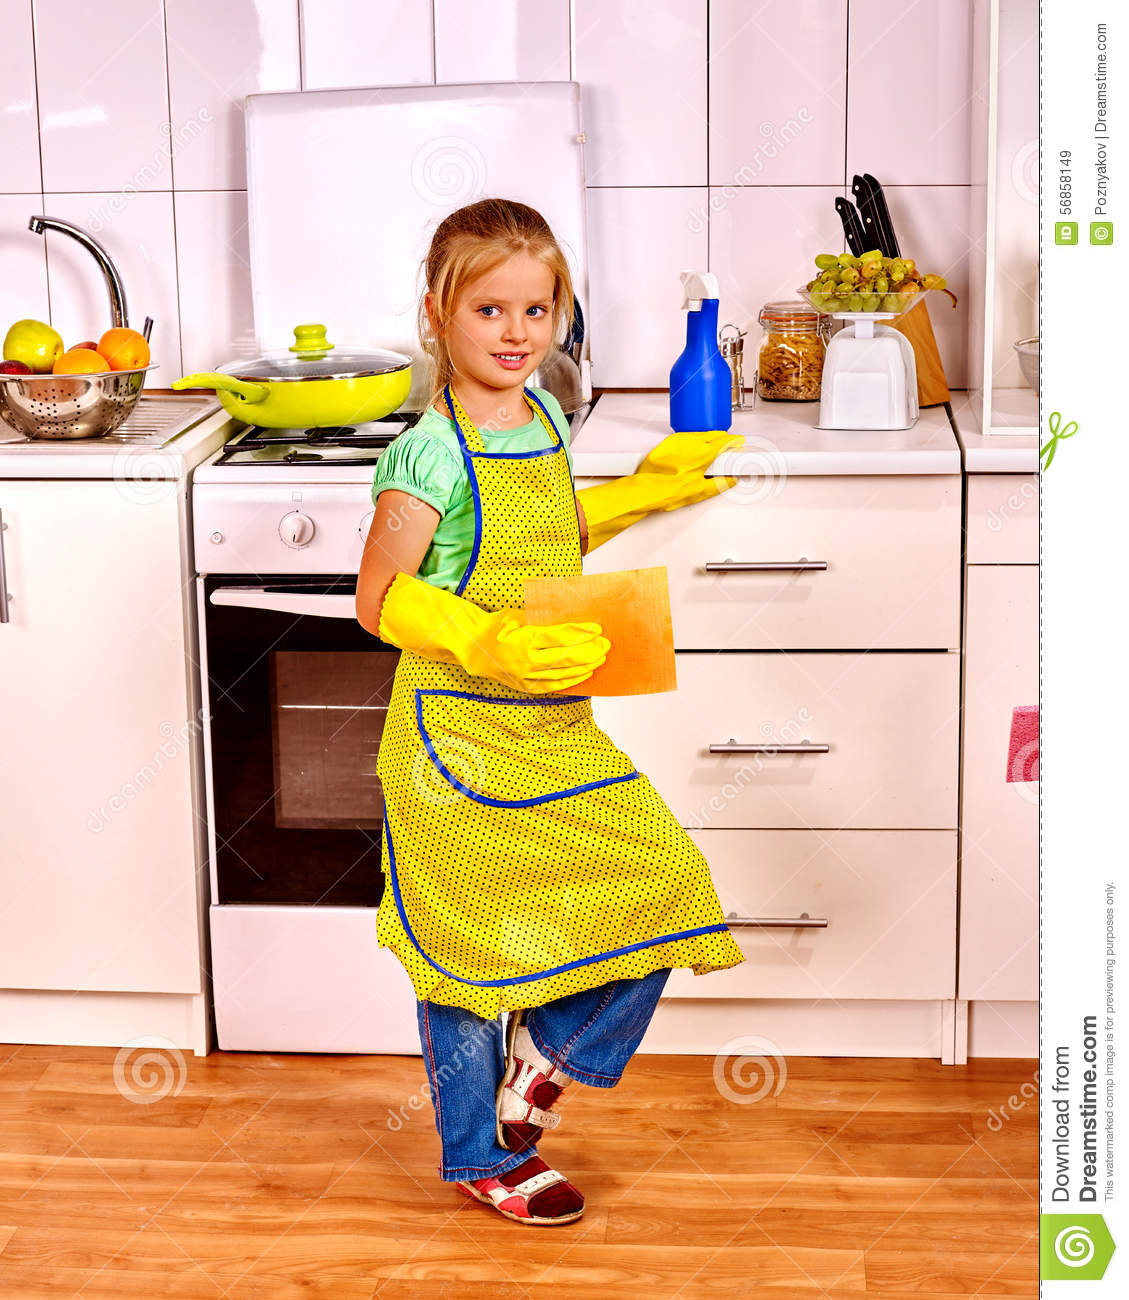 Children cleaning kitchen stock image image of housewife for Small childrens kitchen